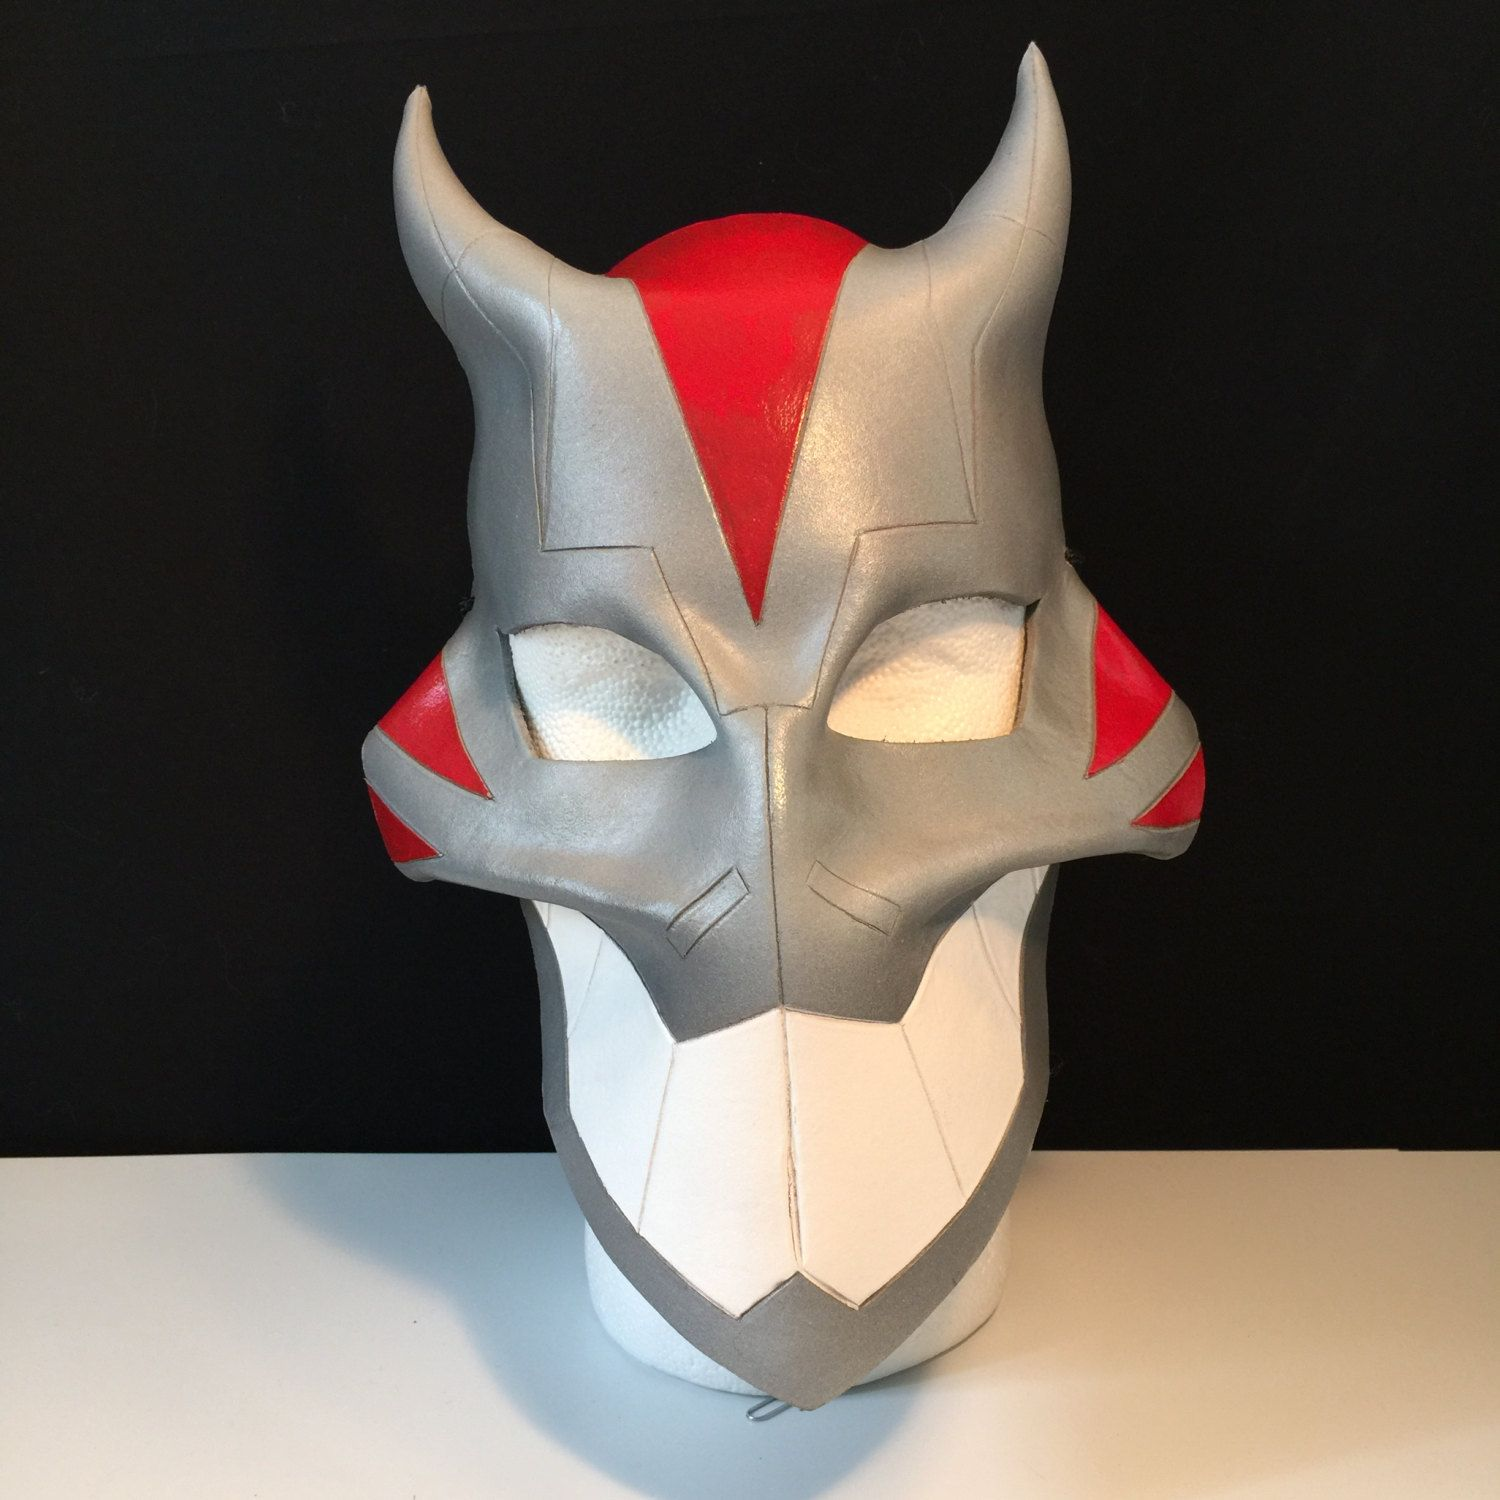 CHESIRE Cat Mask - YOUNG JUSTICE Cosplay Mask larp mask Comicon mask Cat Mask Halloween Mask Animal mask Masquerade Gray mask by FolorsFantasy on Etsy